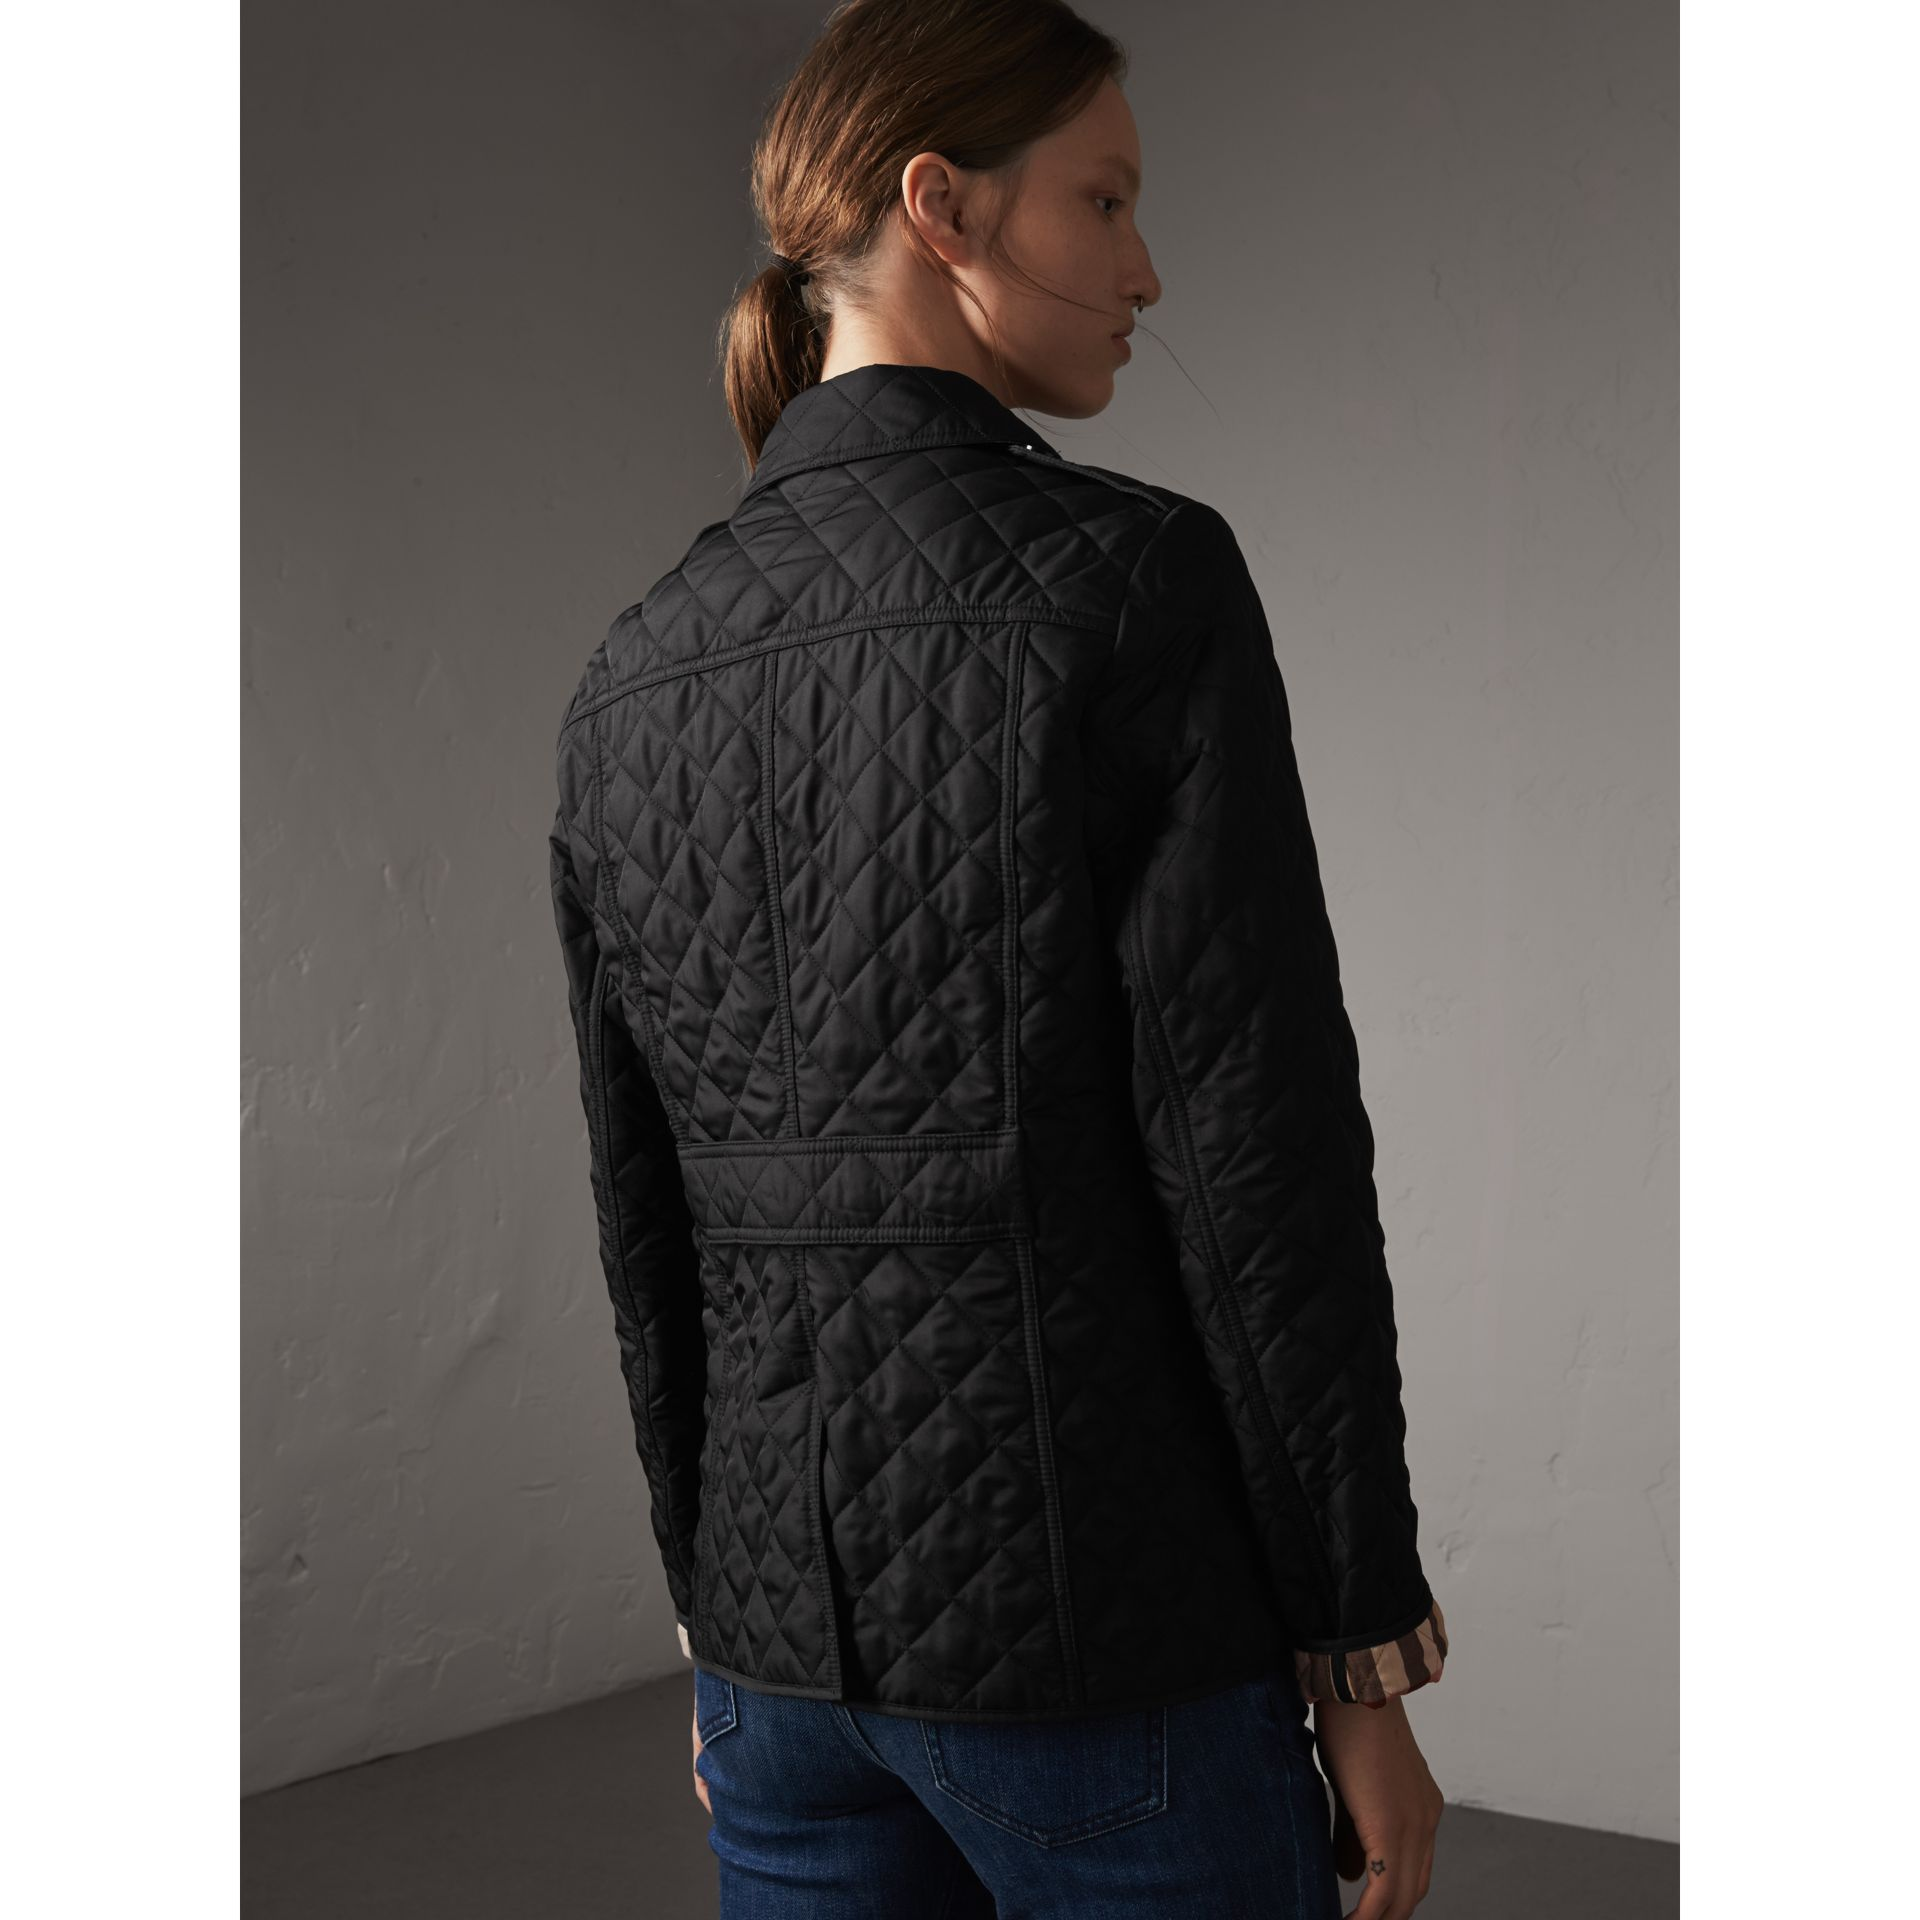 quilt polarquilt country women international s attire barbour black jacket quilted